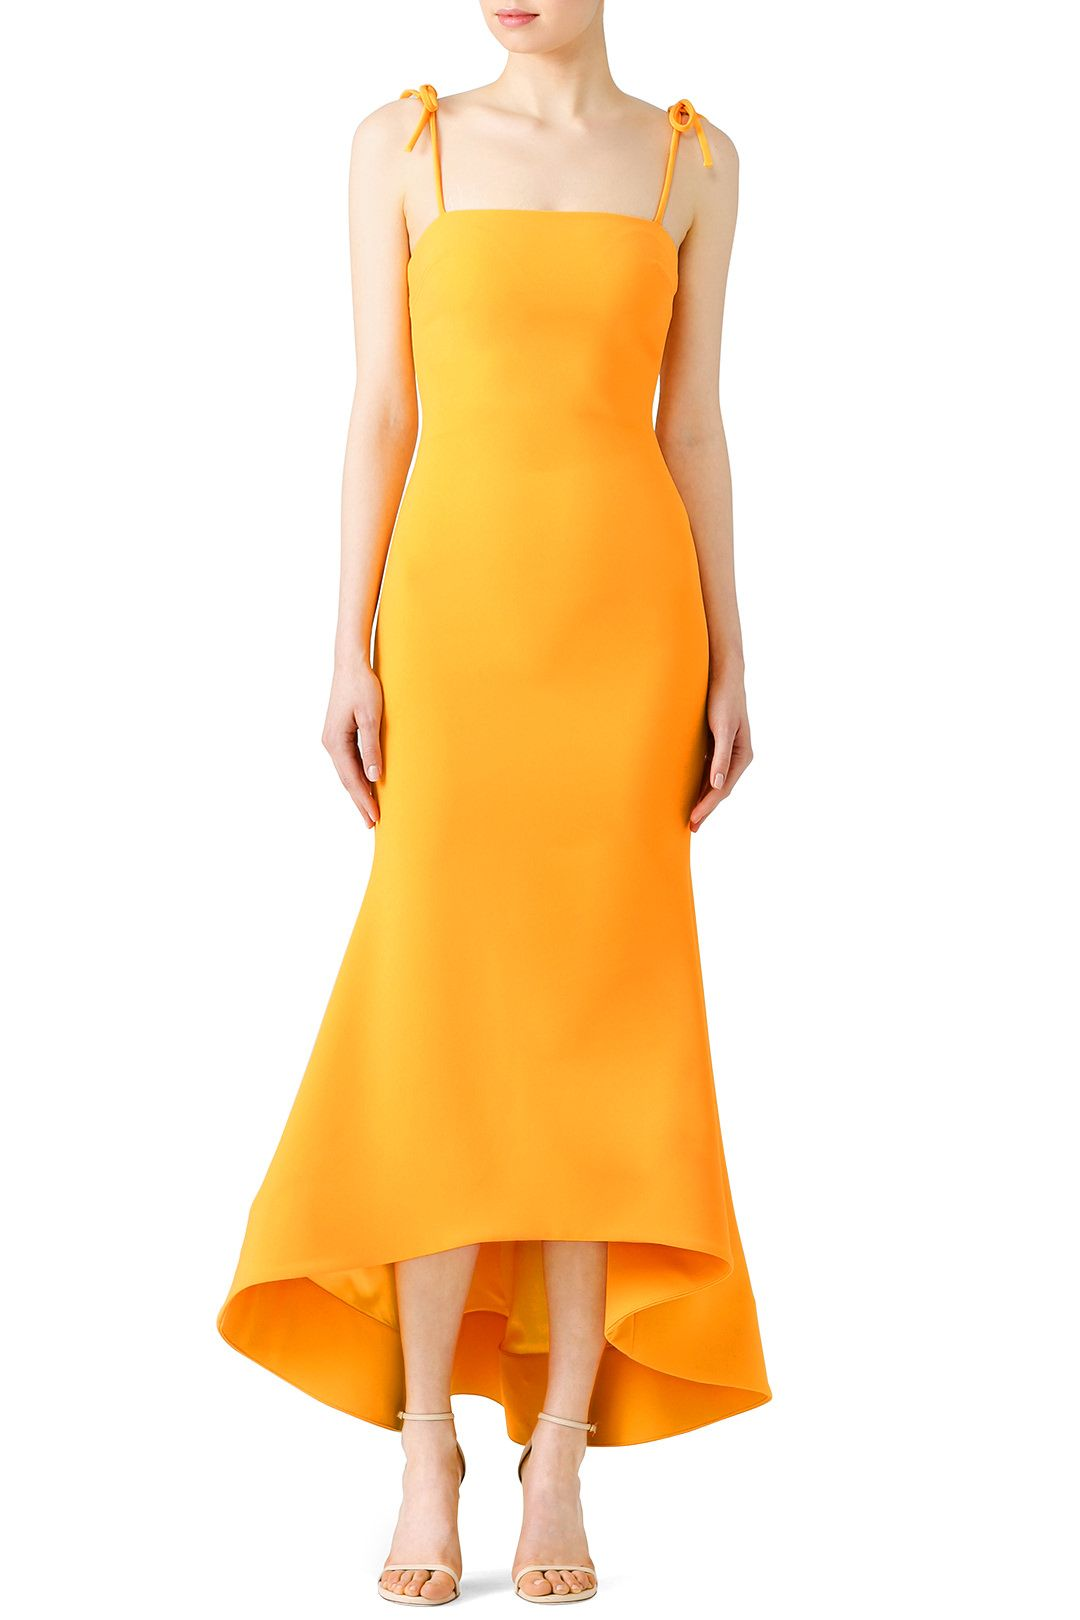 Sunflower Gown By Siriano For 185 195 Only At The Runway